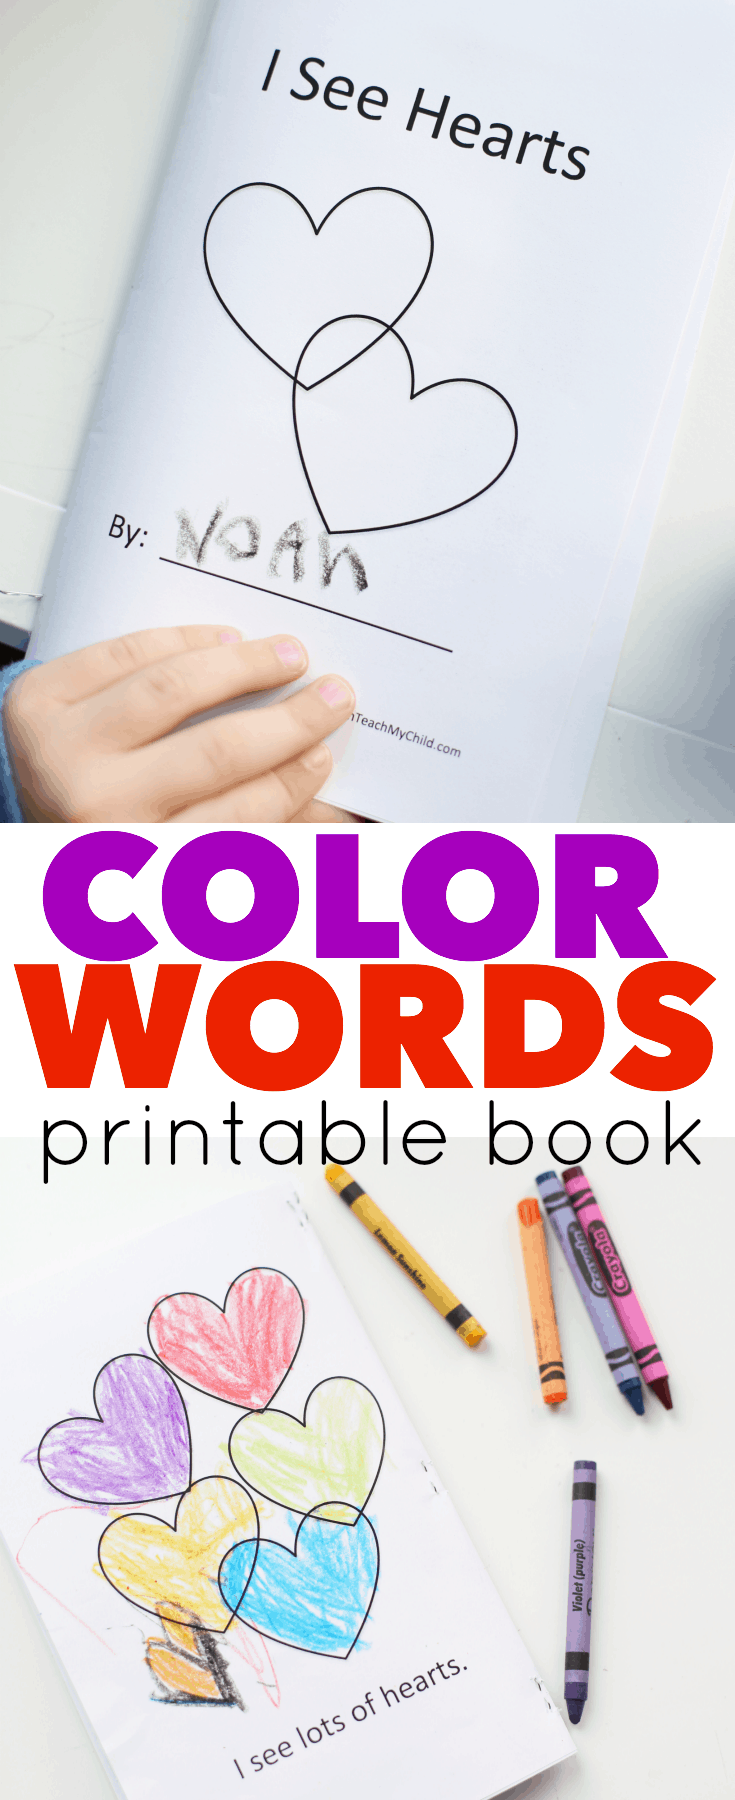 photograph about Color Words Printable called Shade Words and phrases Printable E book for Valentines Working day - I Can Coach